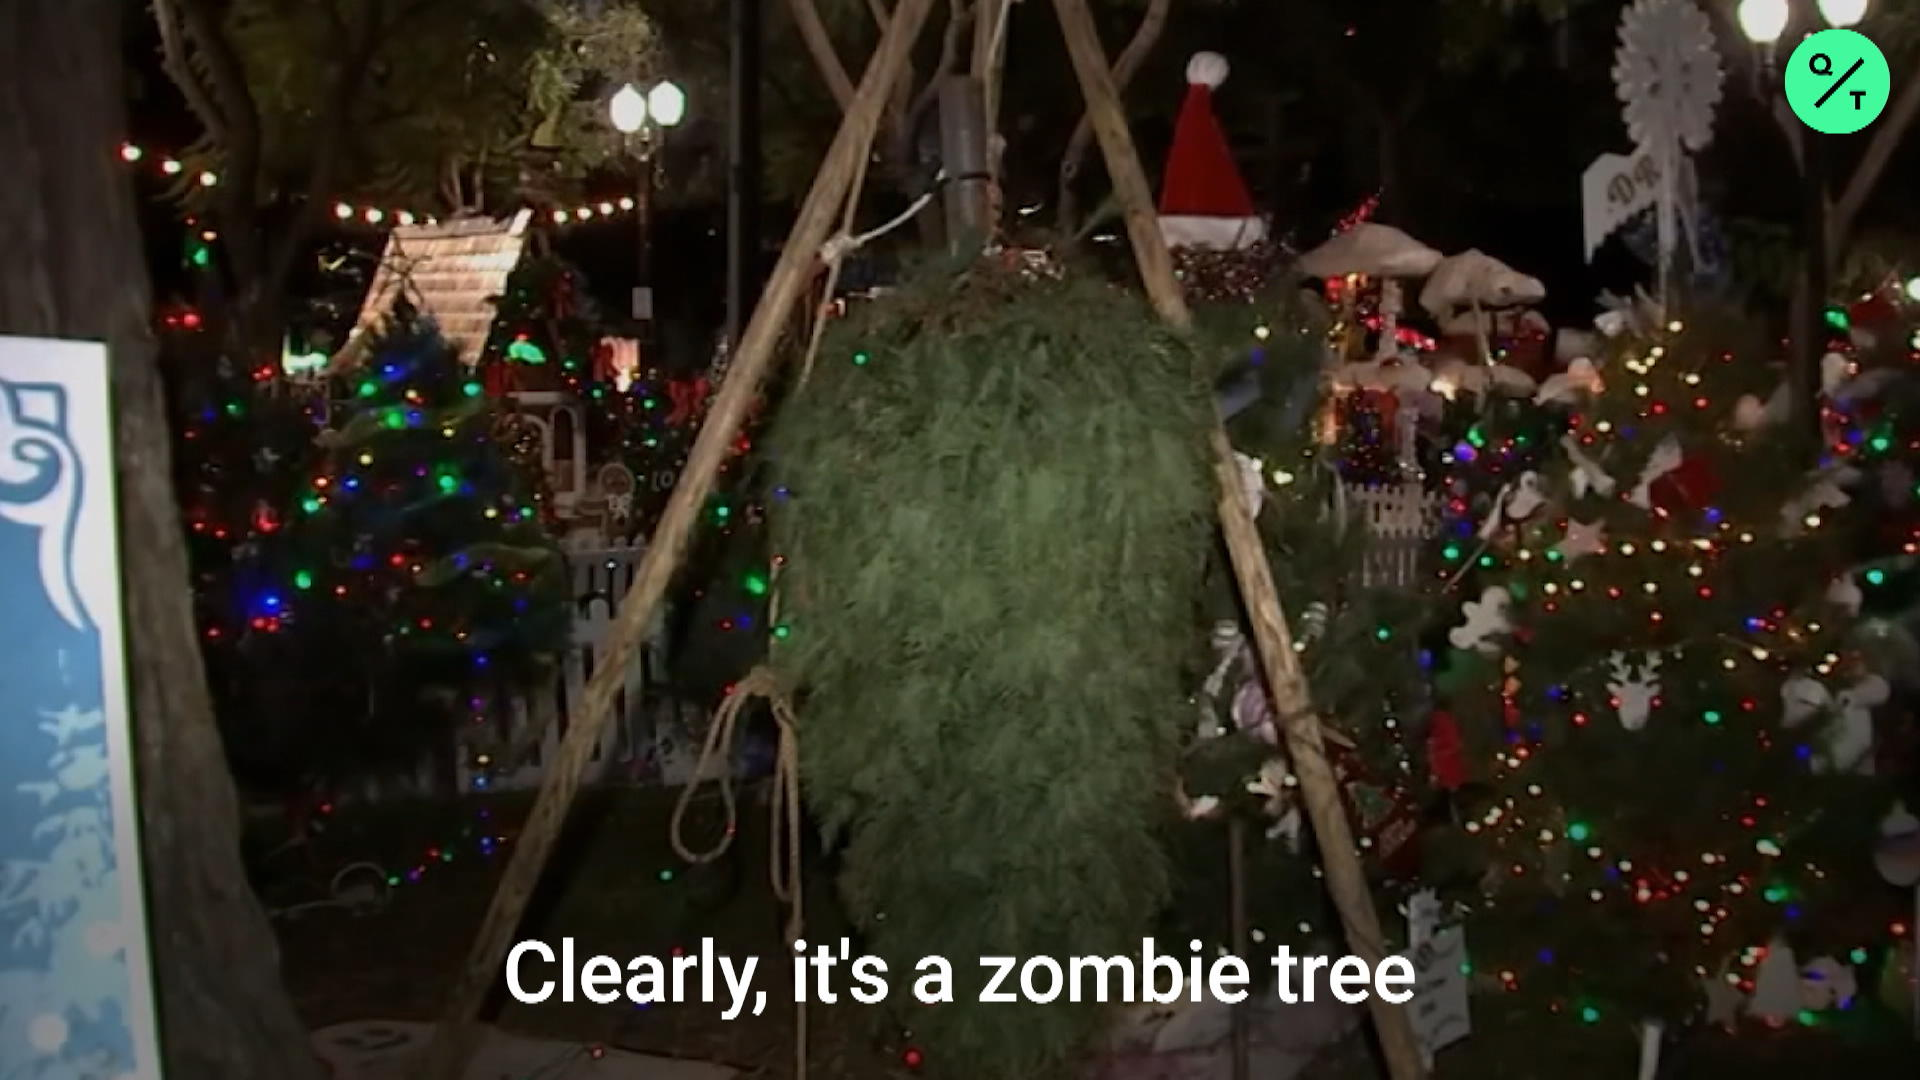 Upside Down Christmas Tree Controversy